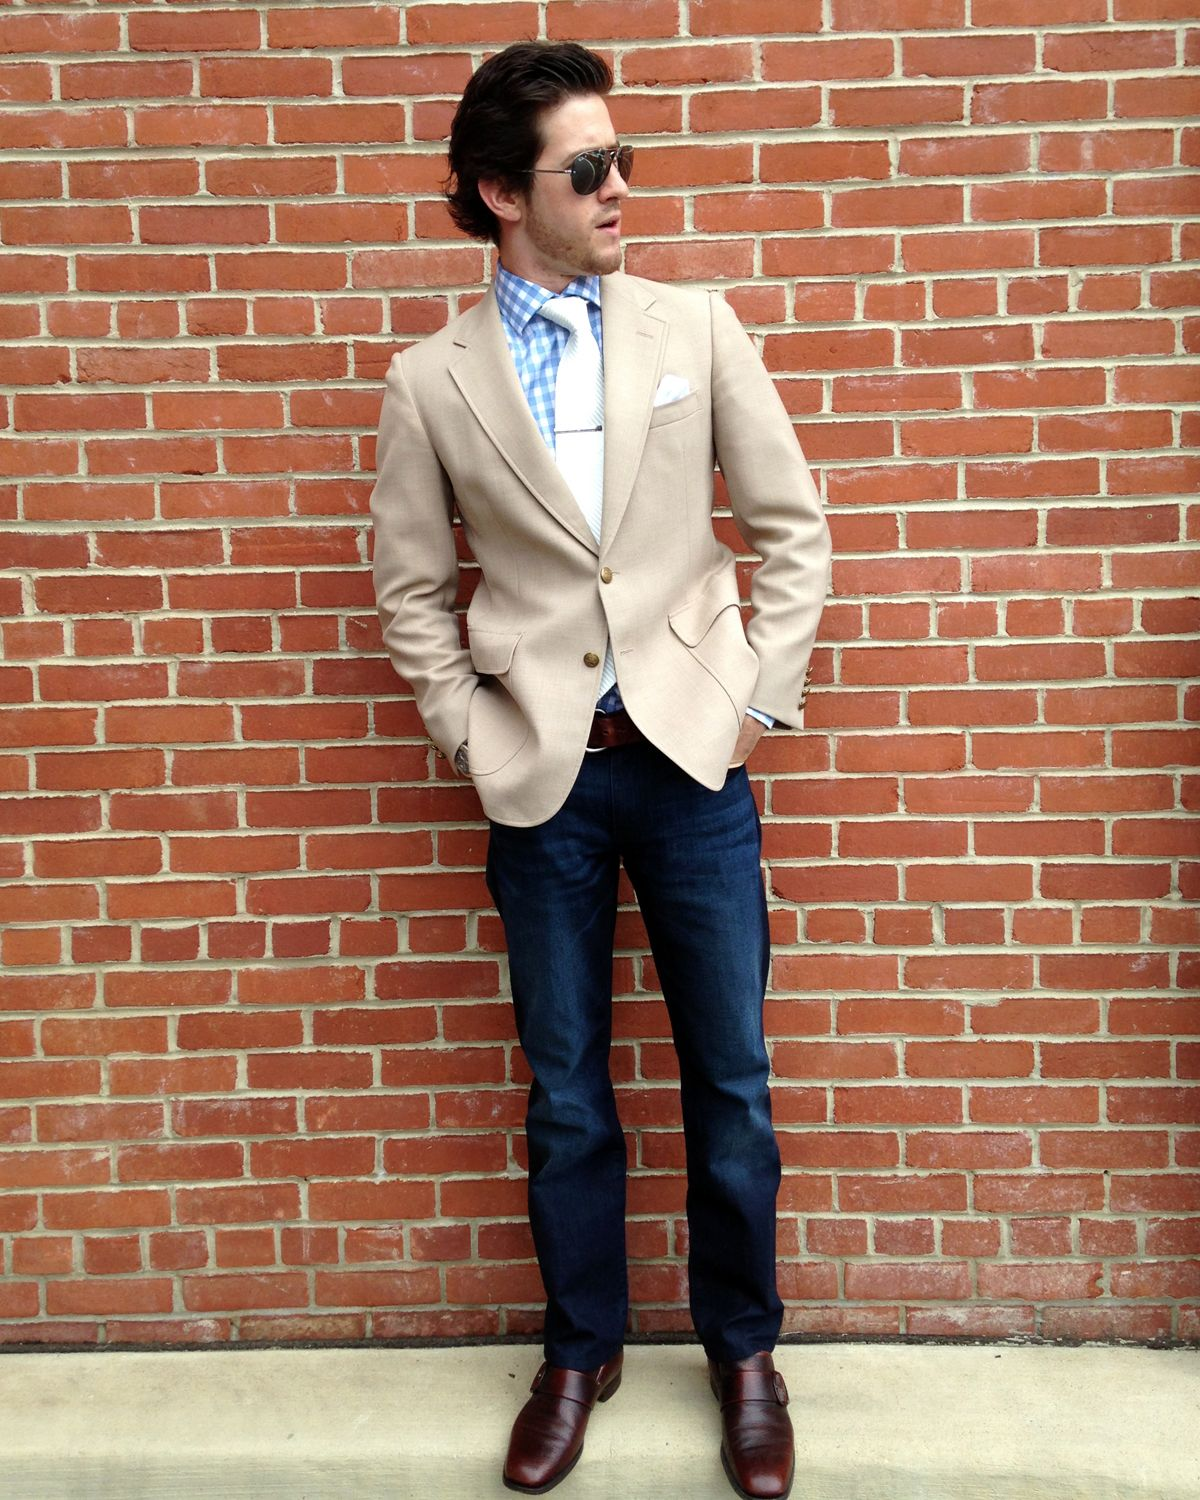 Tan Sport Coat Photo Album - Reikian